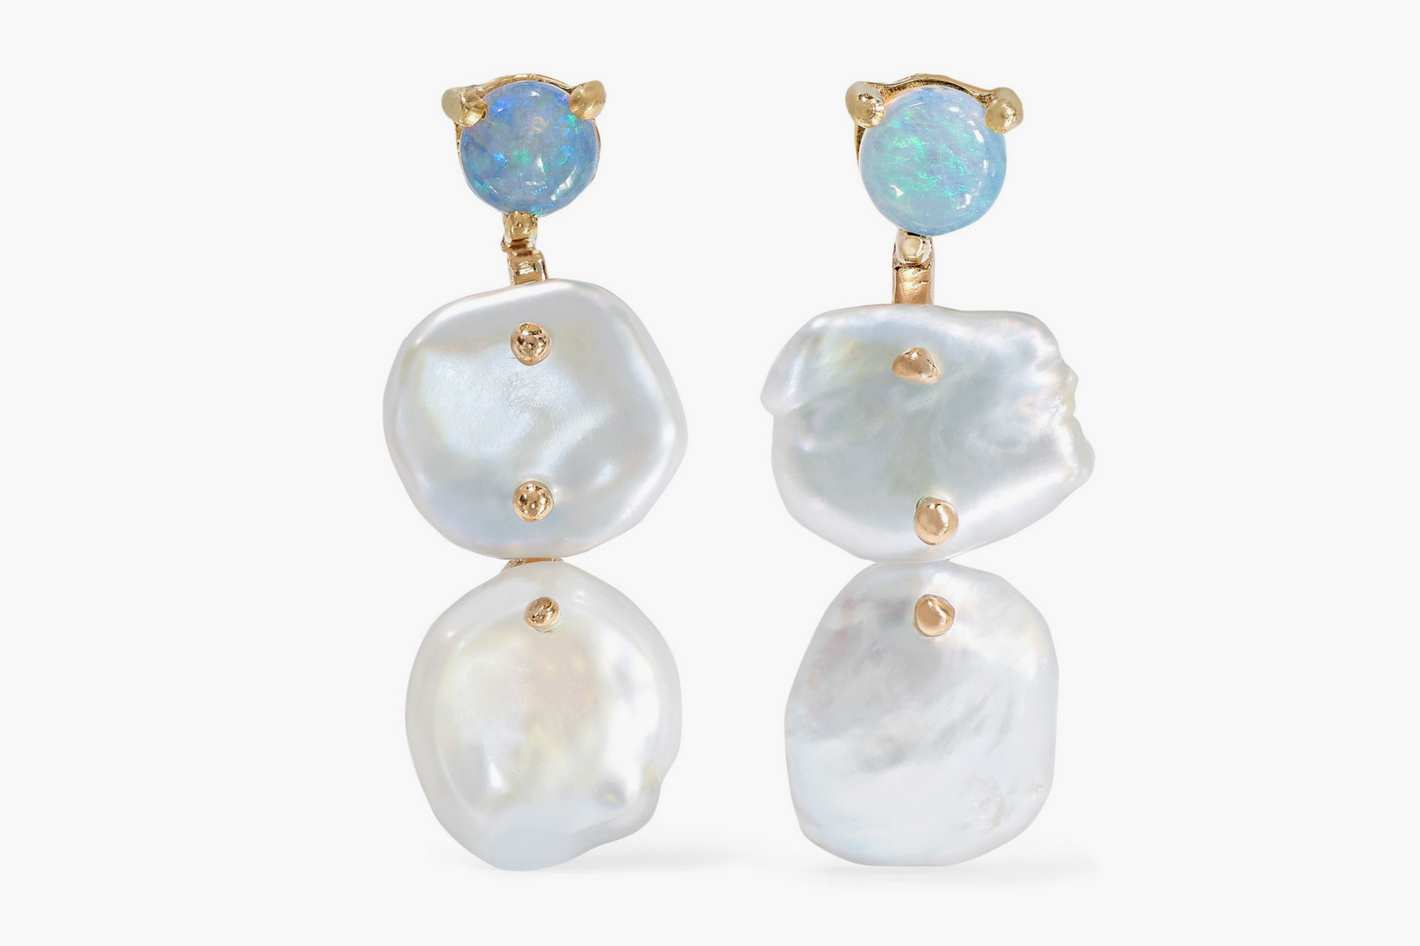 WWAKE + NET SUSTAINGold, Pearl, and Opal Earrings